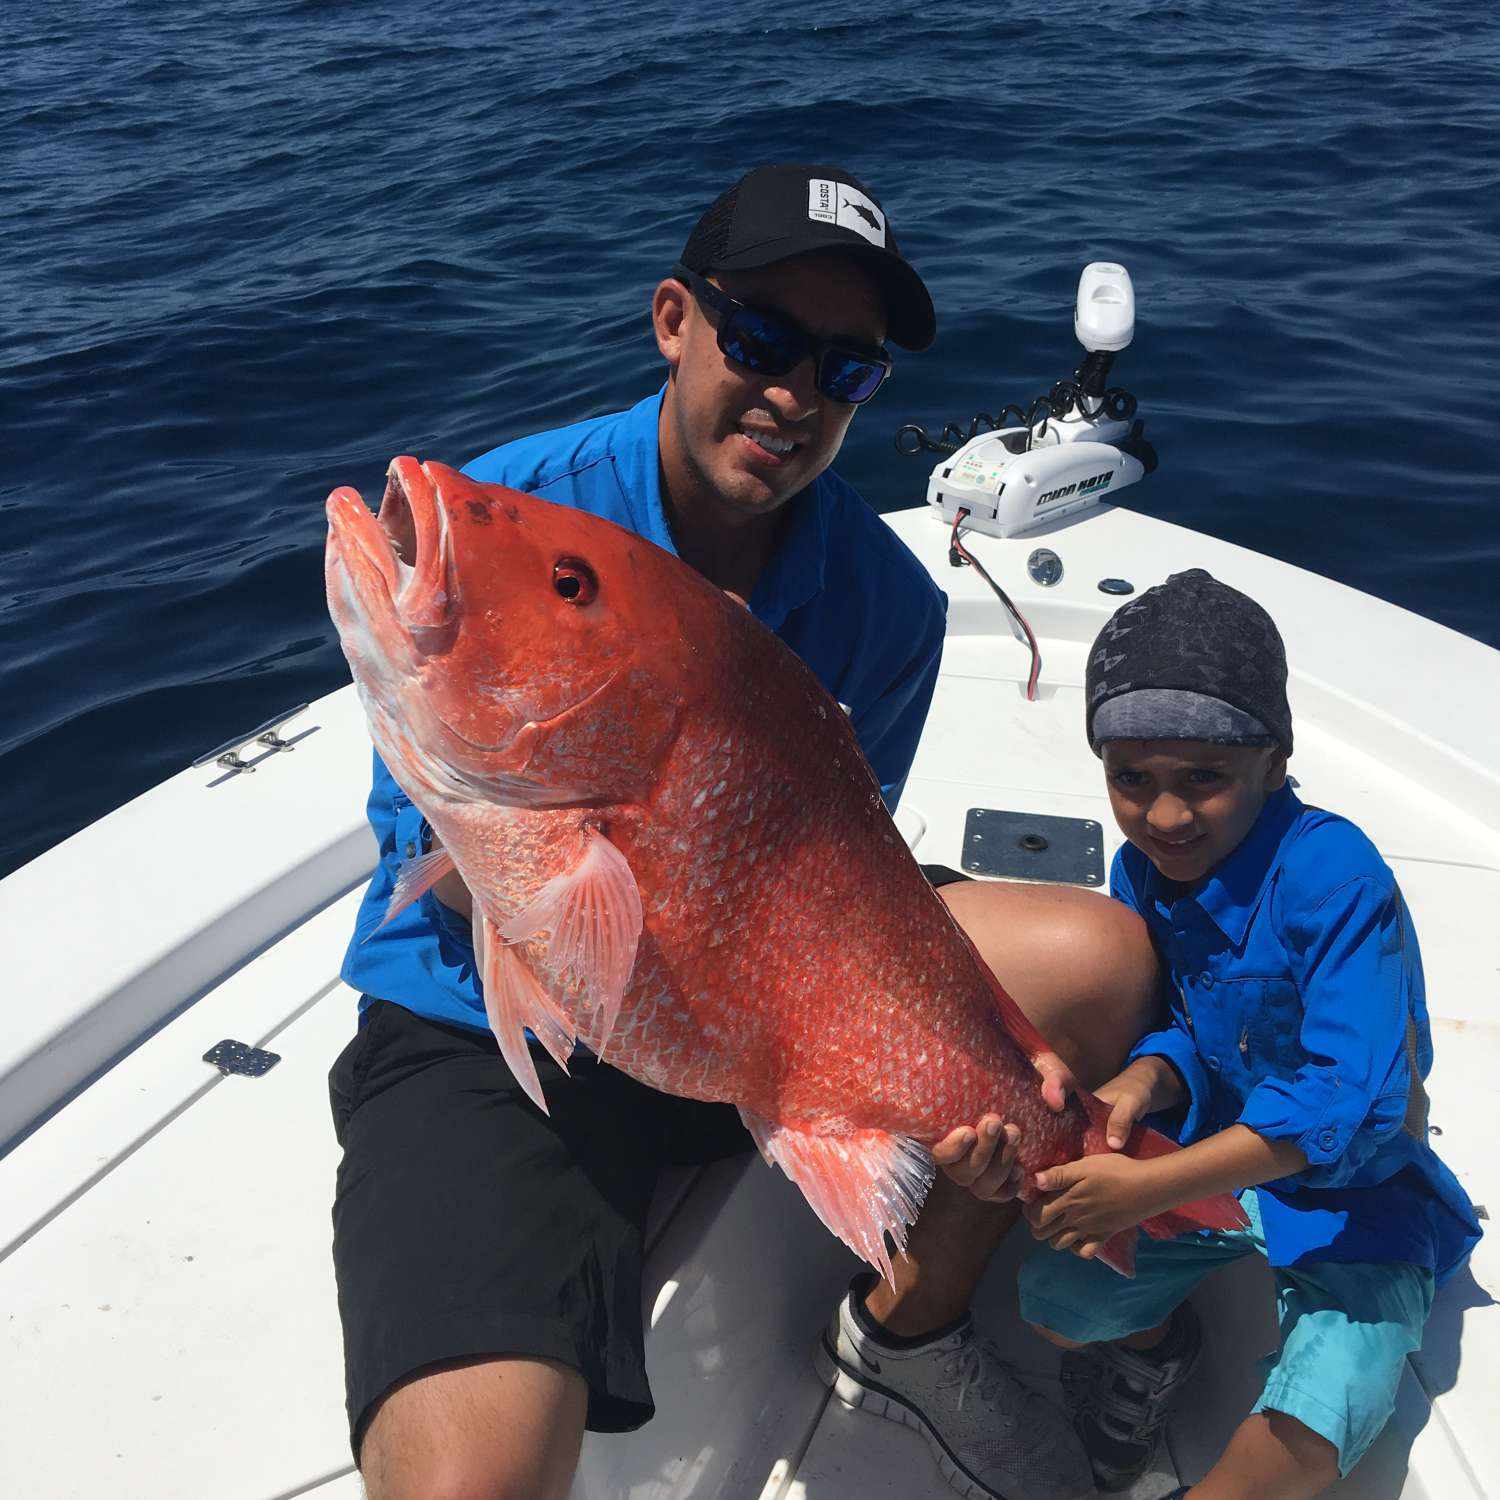 Title: Father Son Moment - On board their Sportsman Masters 247 Bay Boat - Location: Jacksonville, Florida. Participating in the Photo Contest #SportsmanAugust2017